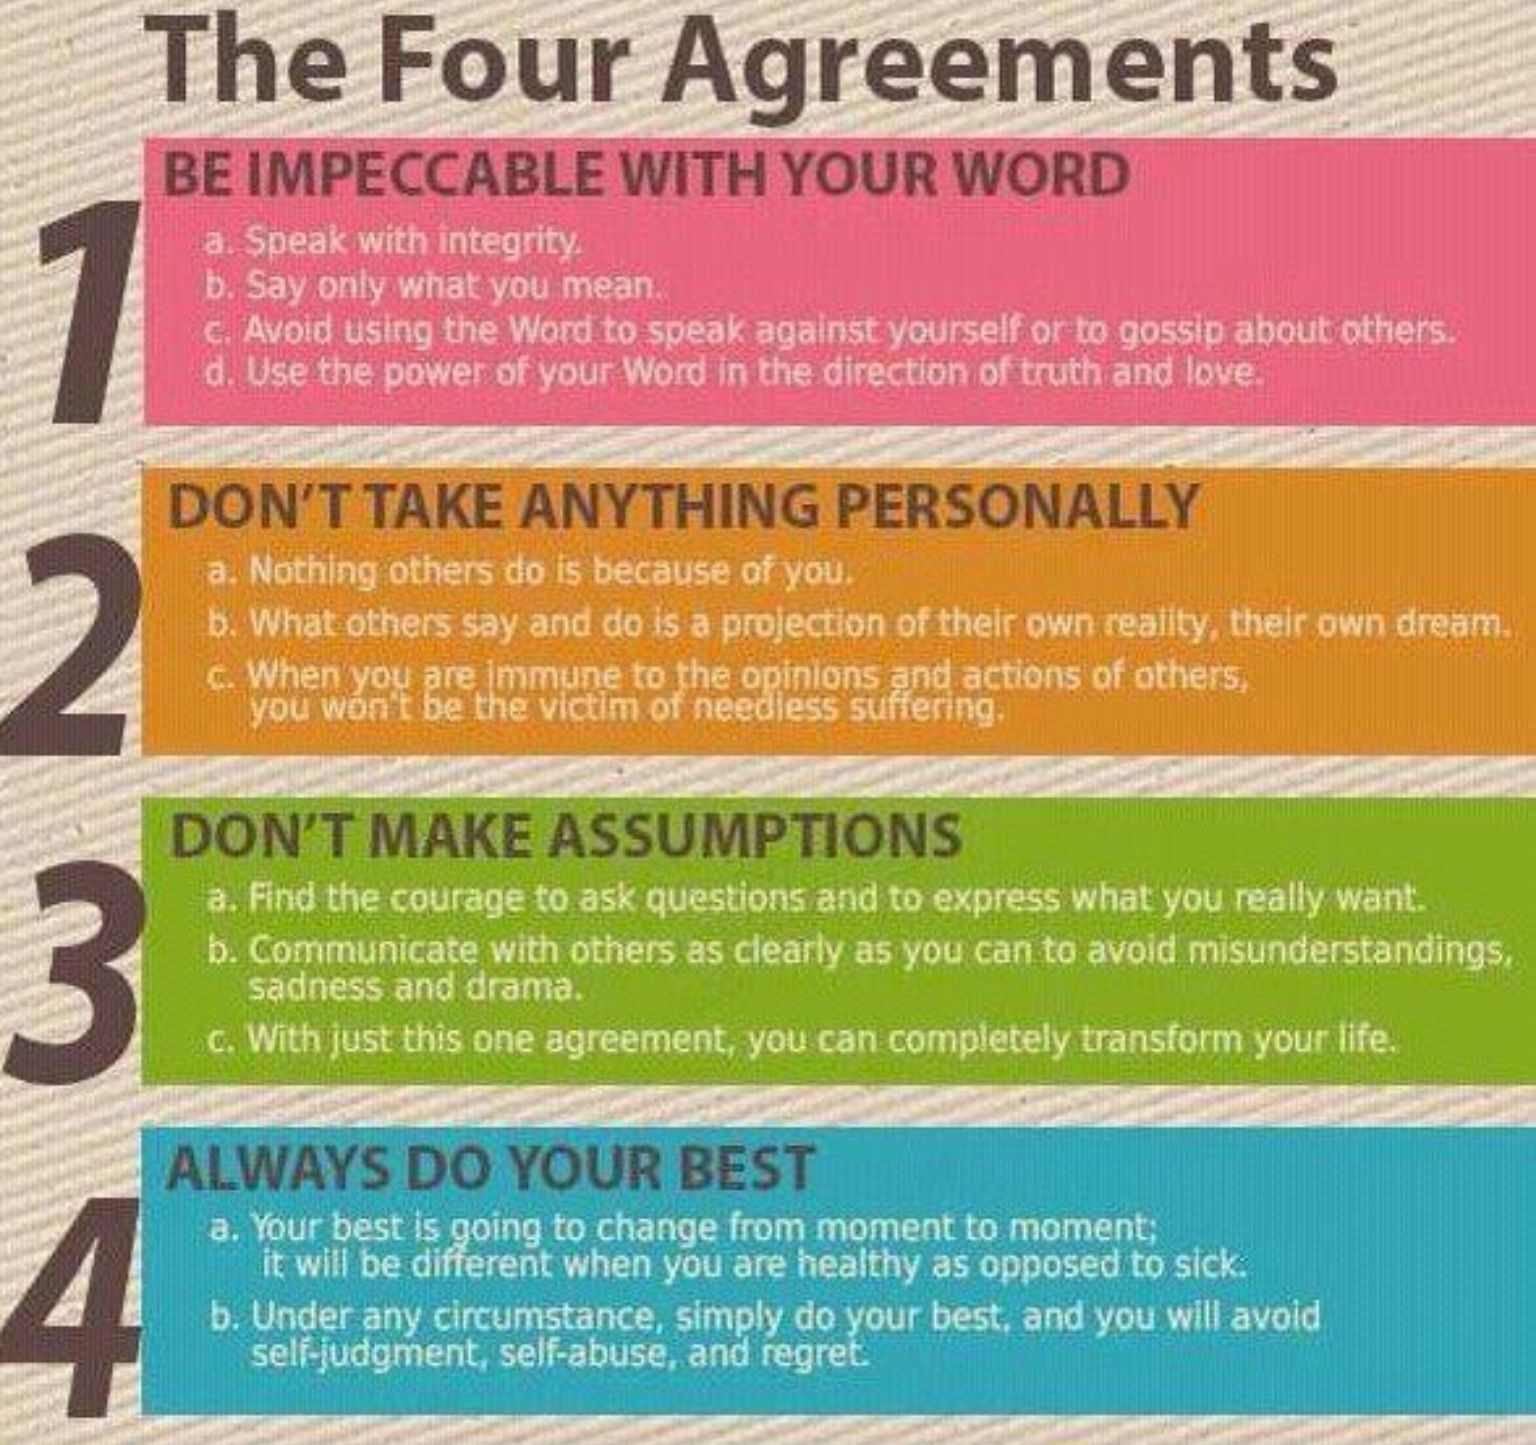 The Four Agreements Uplifting Words